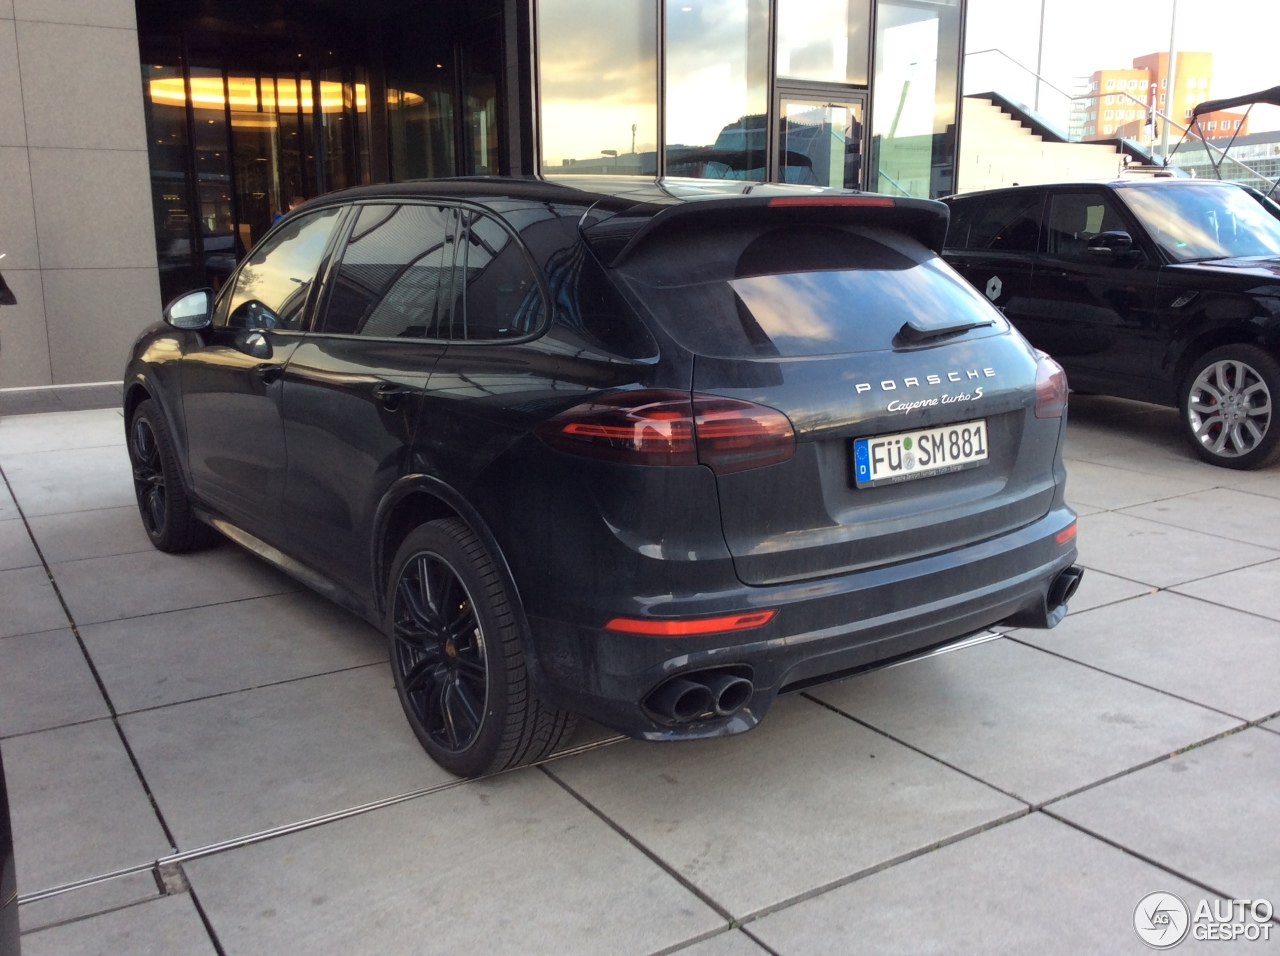 porsche 958 cayenne turbo s mkii 29 april 2017 autogespot. Black Bedroom Furniture Sets. Home Design Ideas